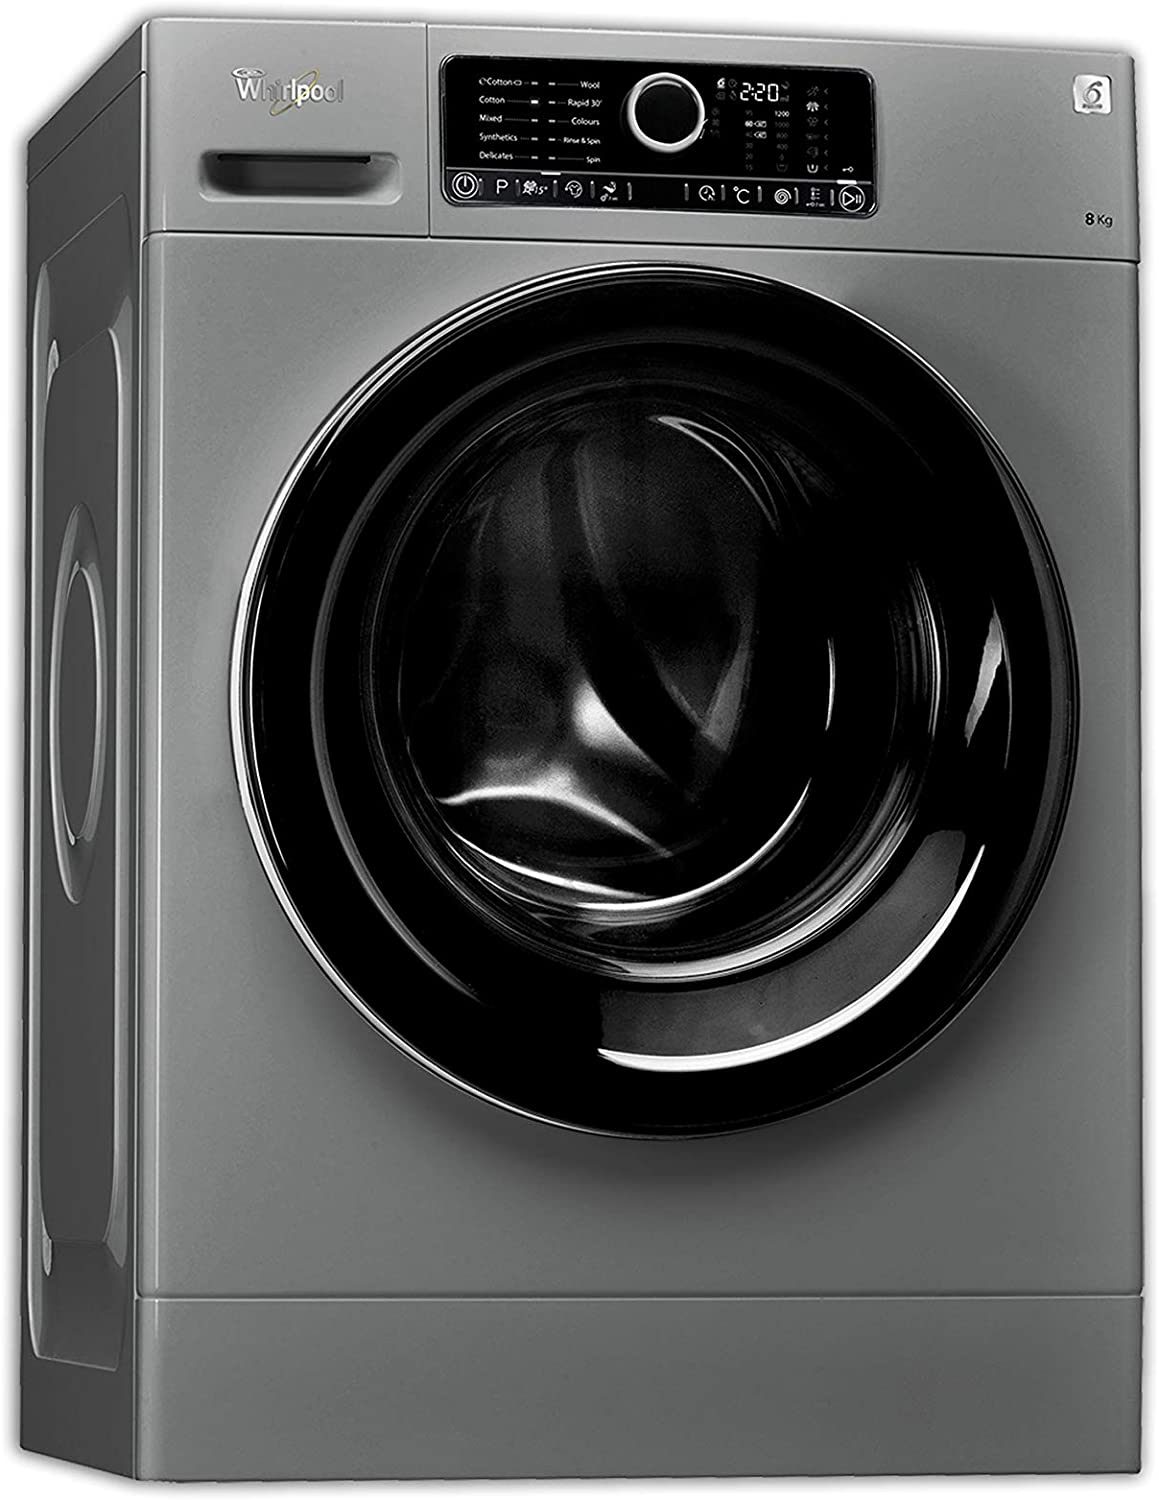 Whirlpool Front Load Washing Machine 8 Kg Capacity